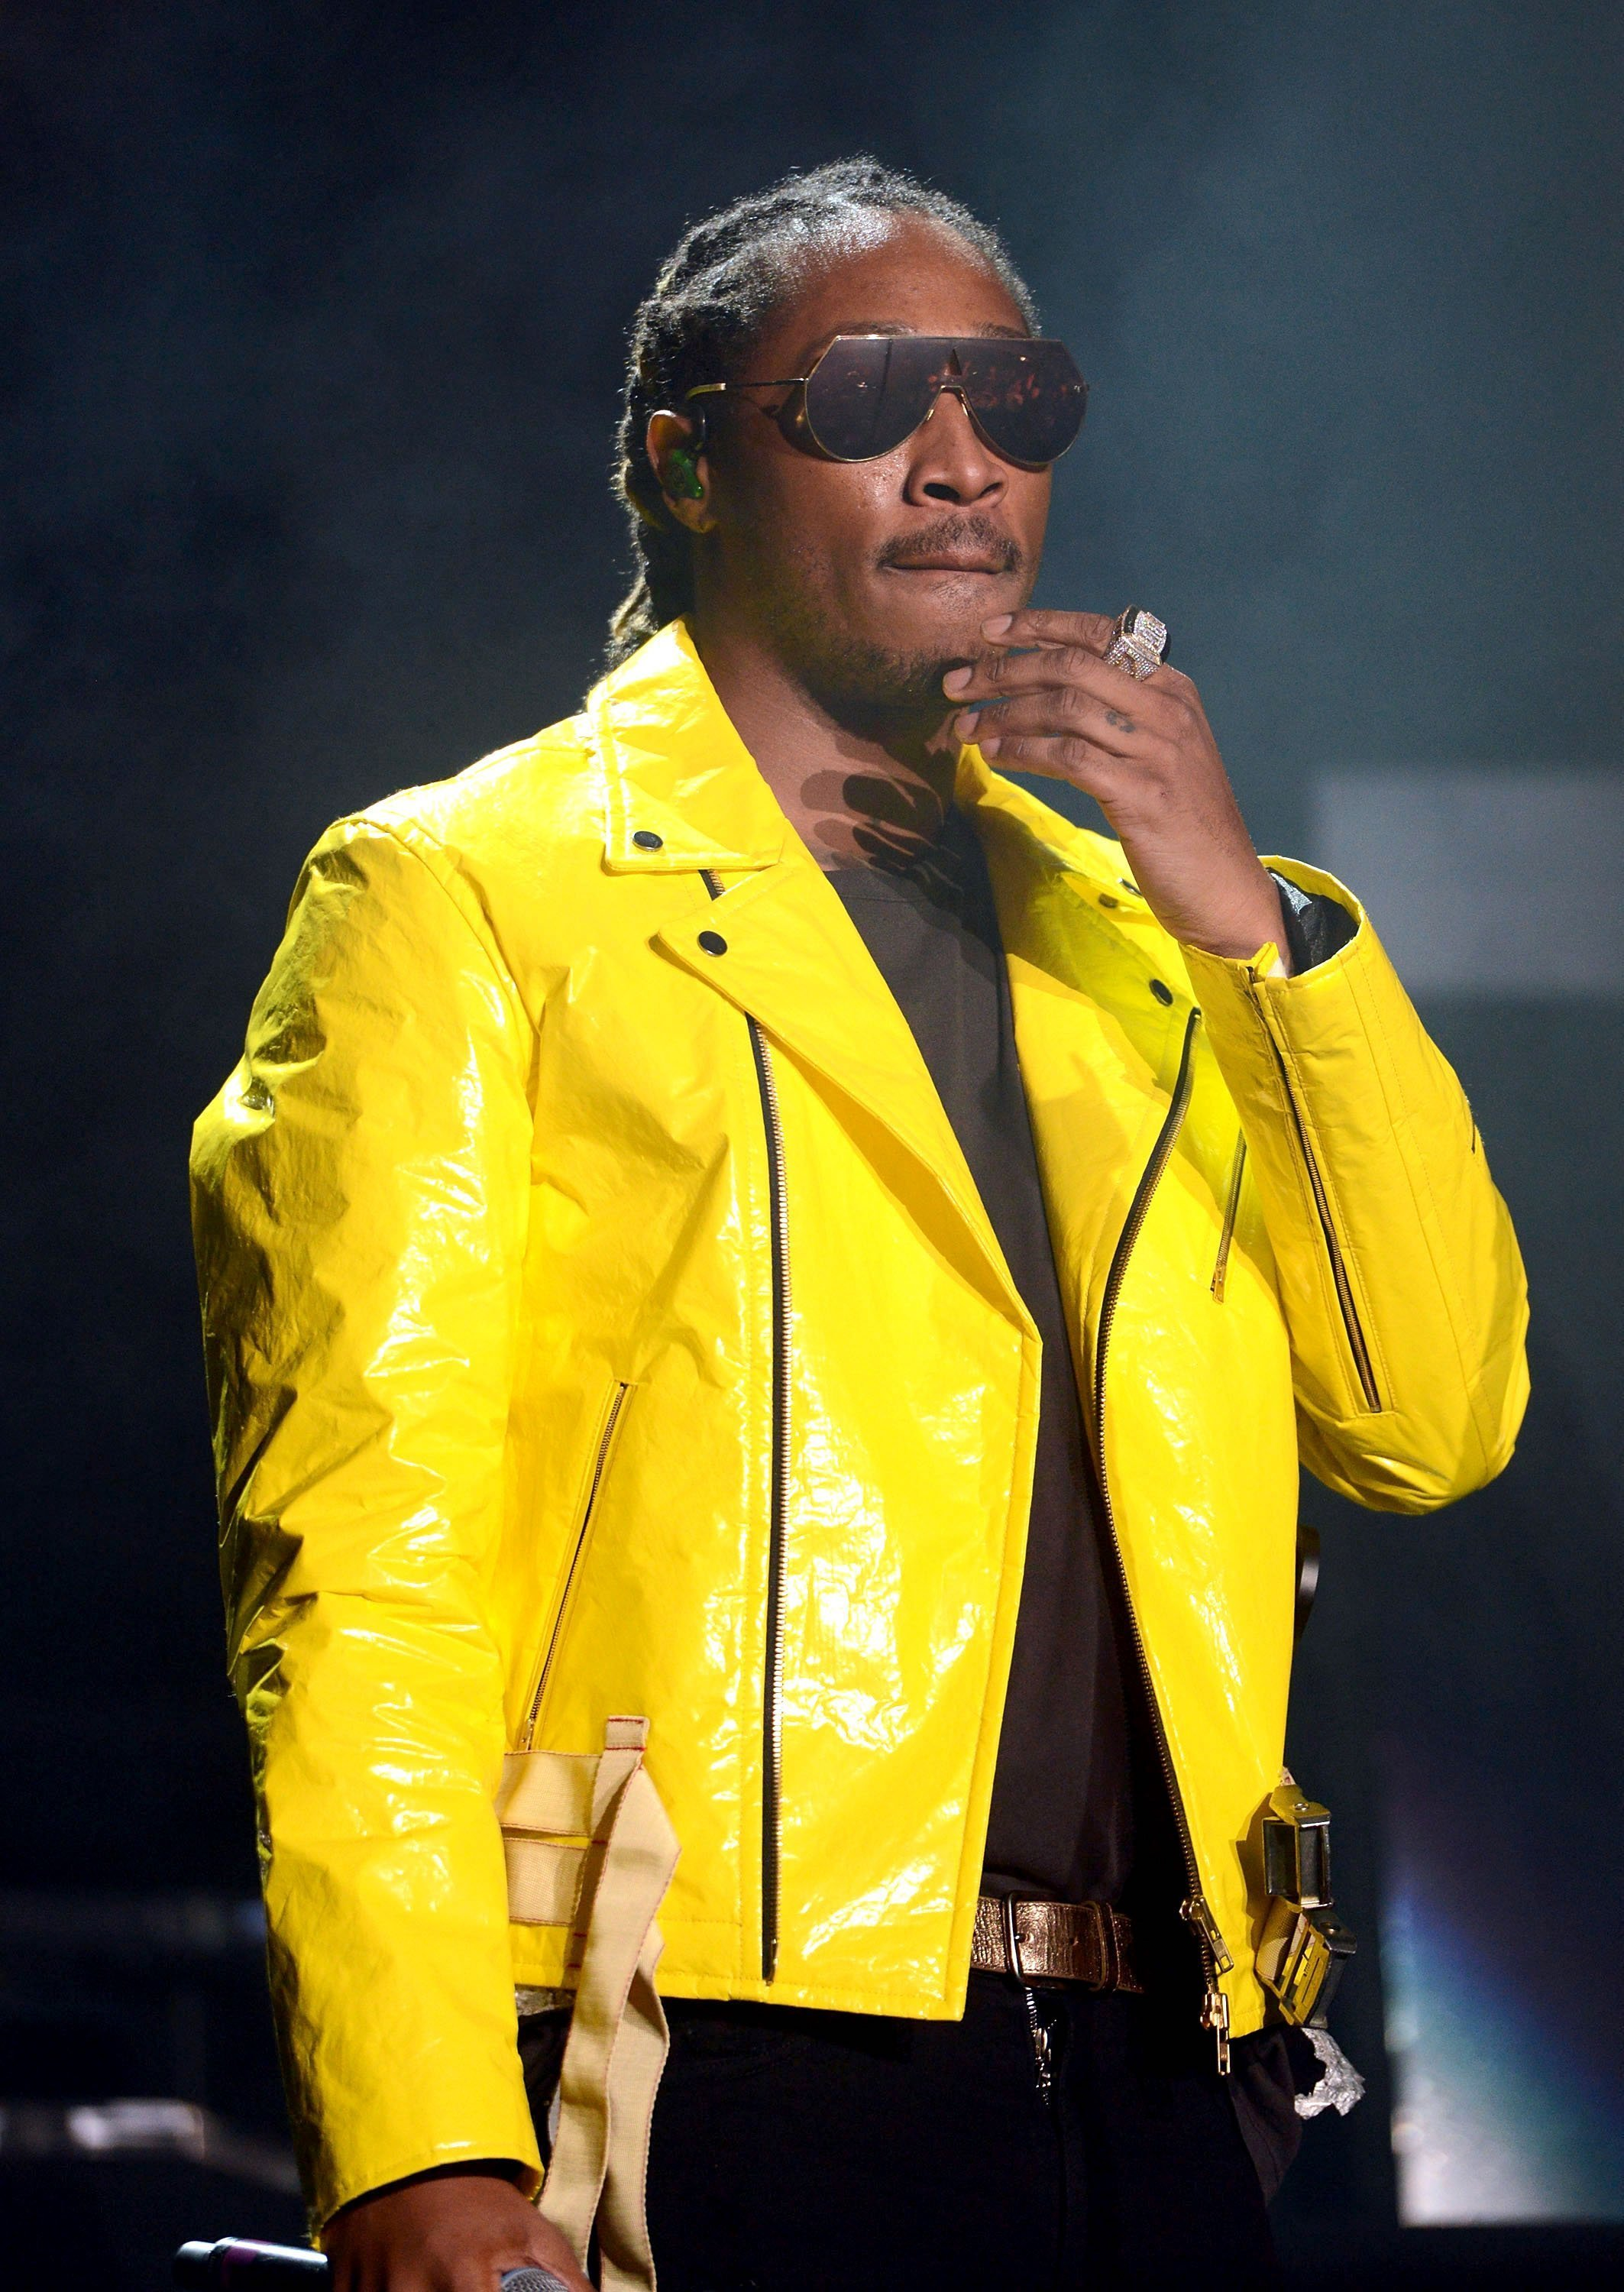 """Rapper Future onstage during the """"Nobody Safe"""" tour in California on June 14, 2017 